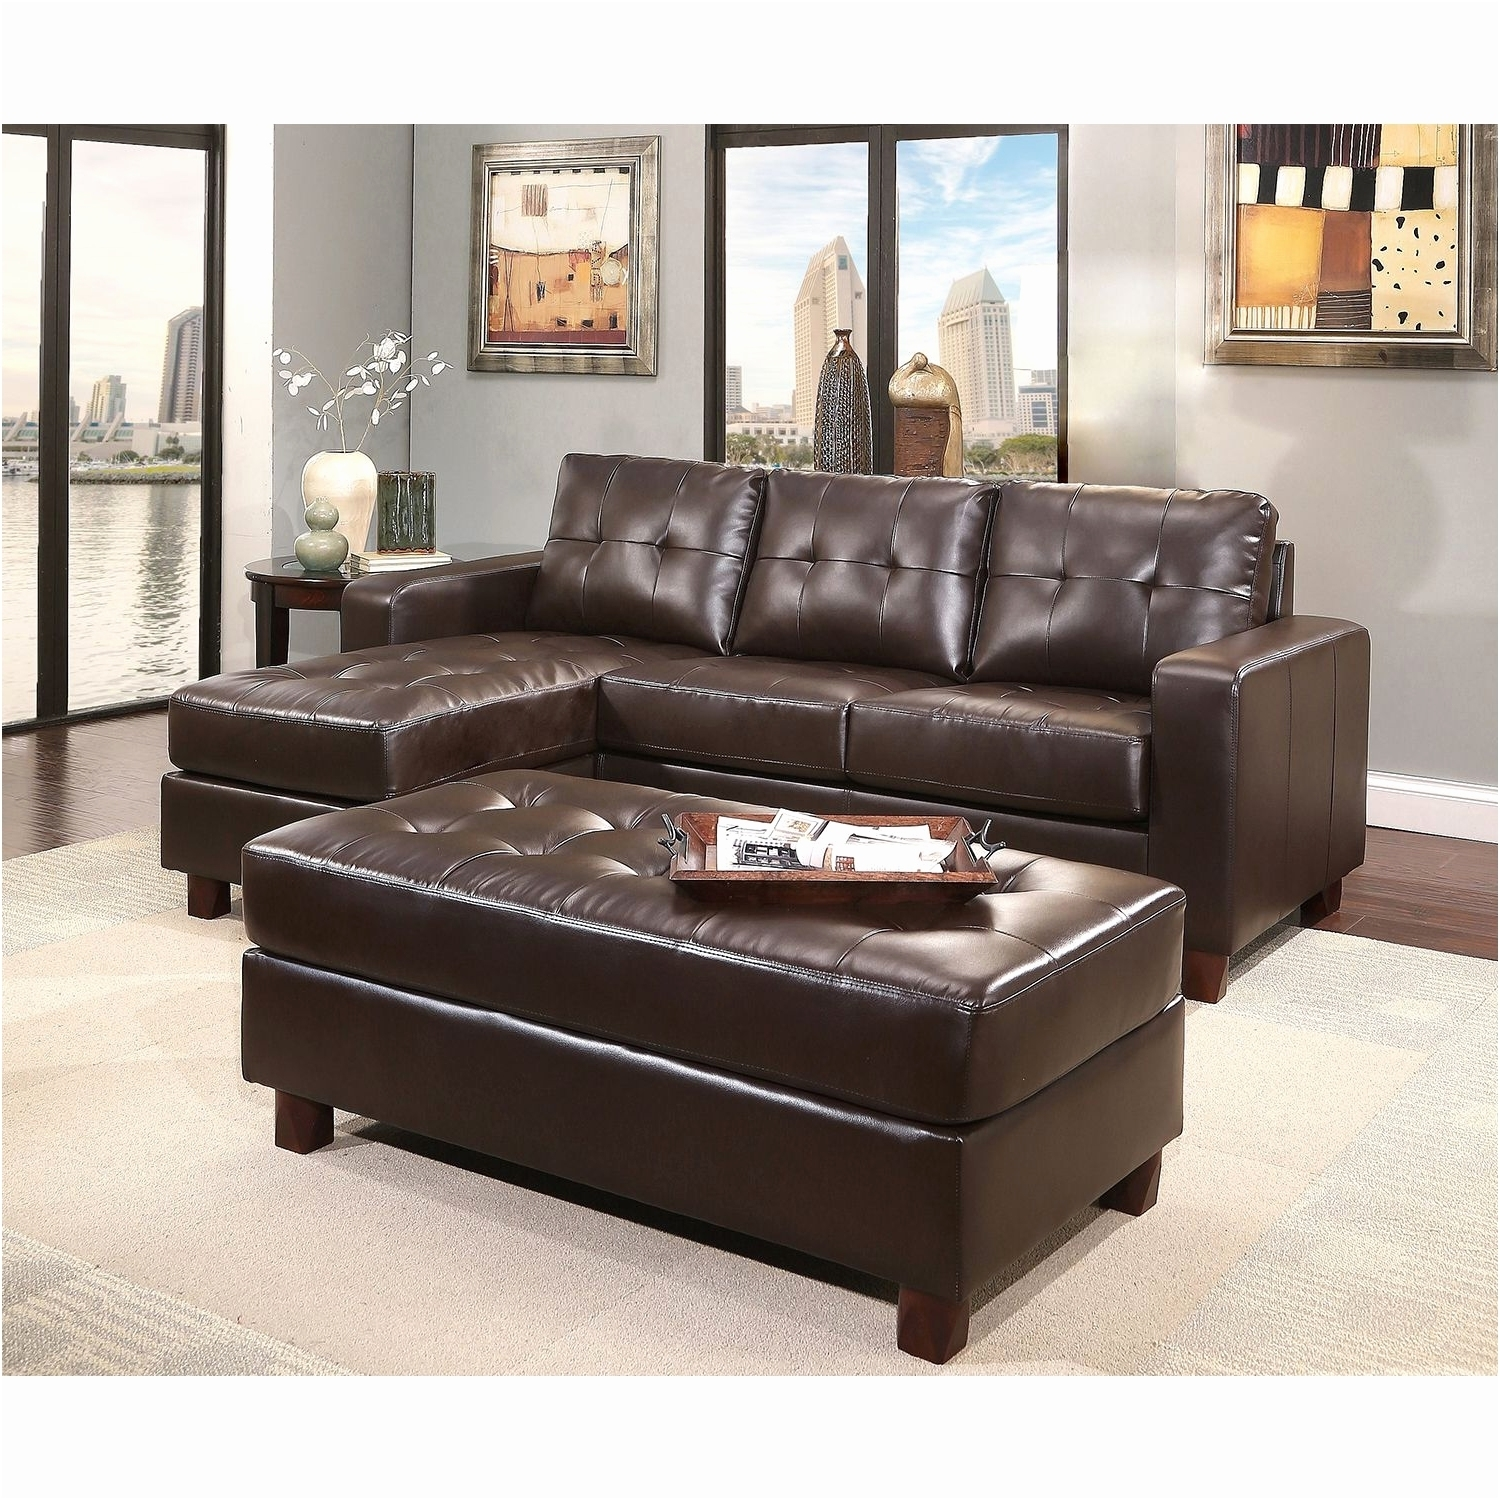 Rustic Sectional Sofas Fresh Claremont Leather Reversible Chaise Intended For Sectional Sofas At Sam's Club (Image 9 of 10)